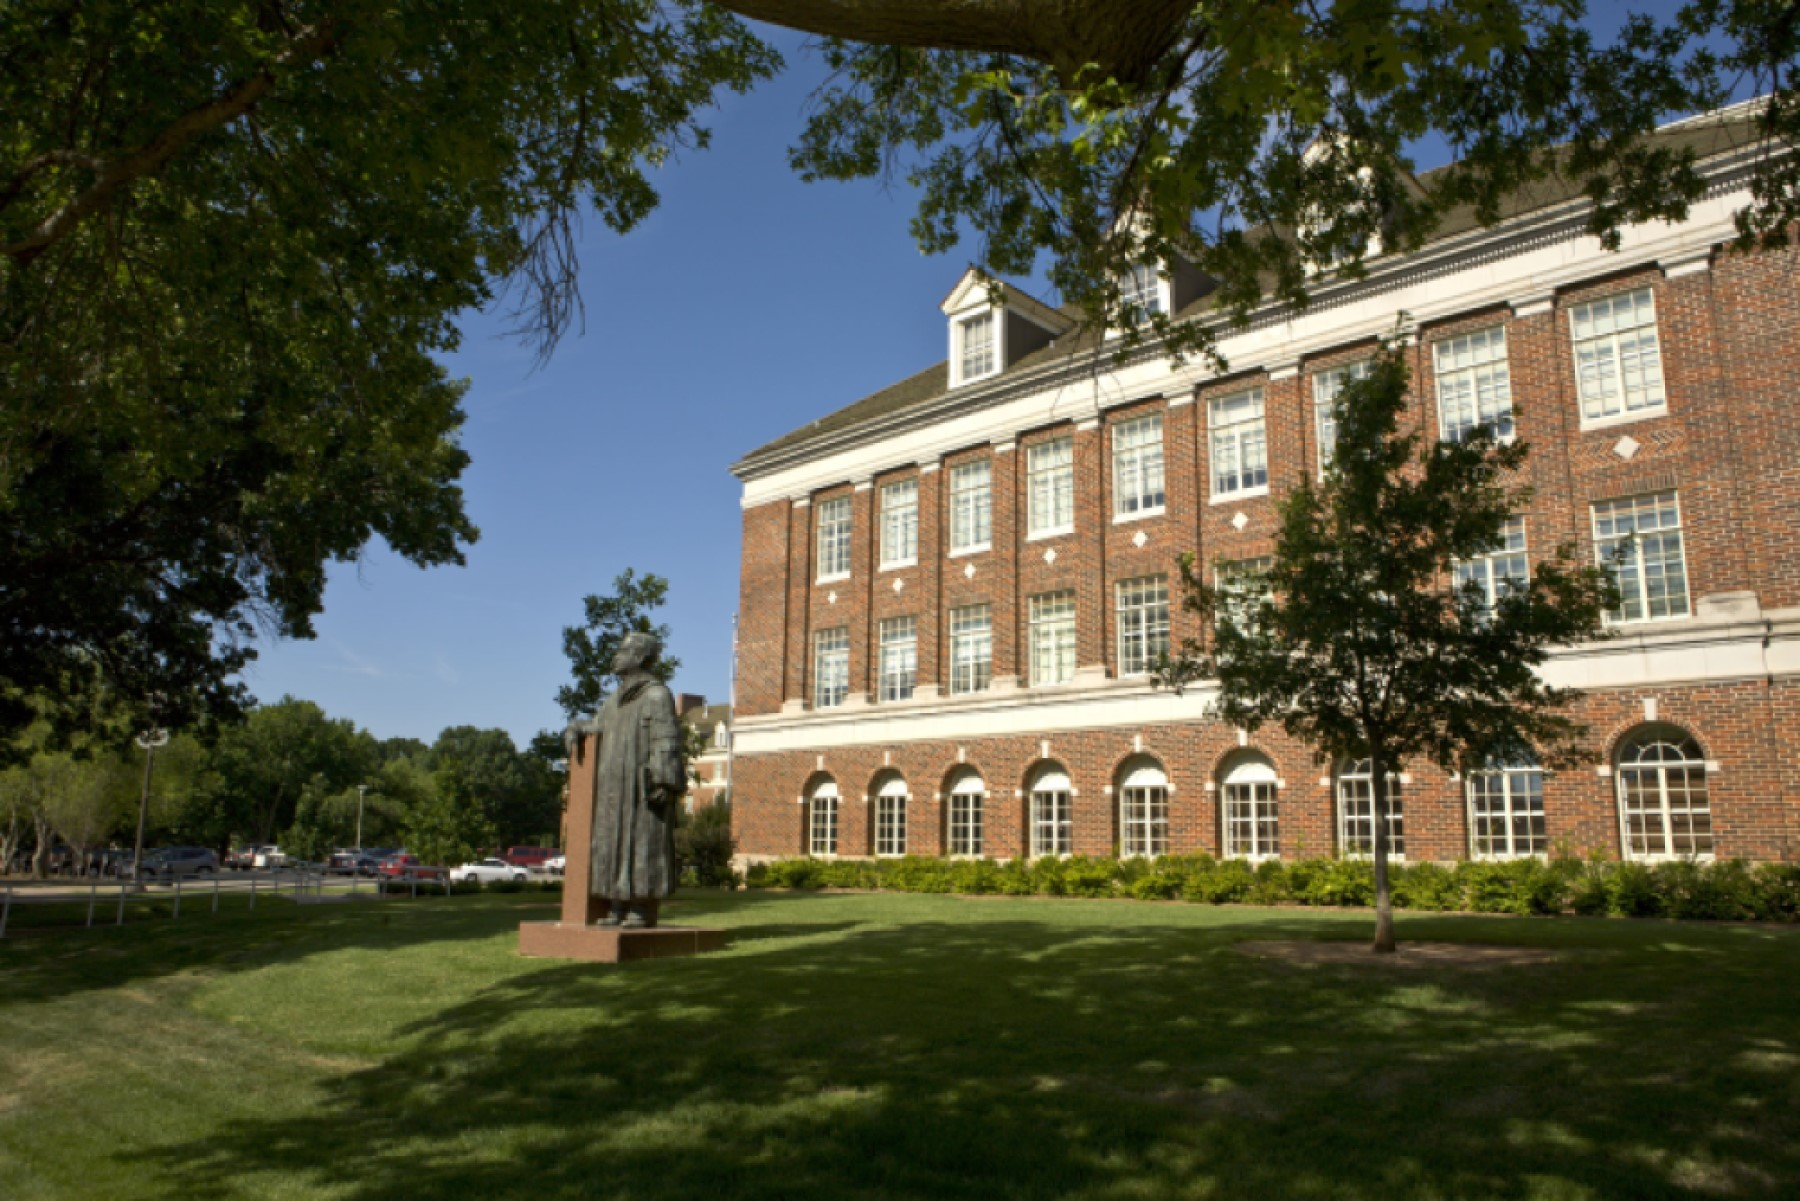 Whitehurst hall